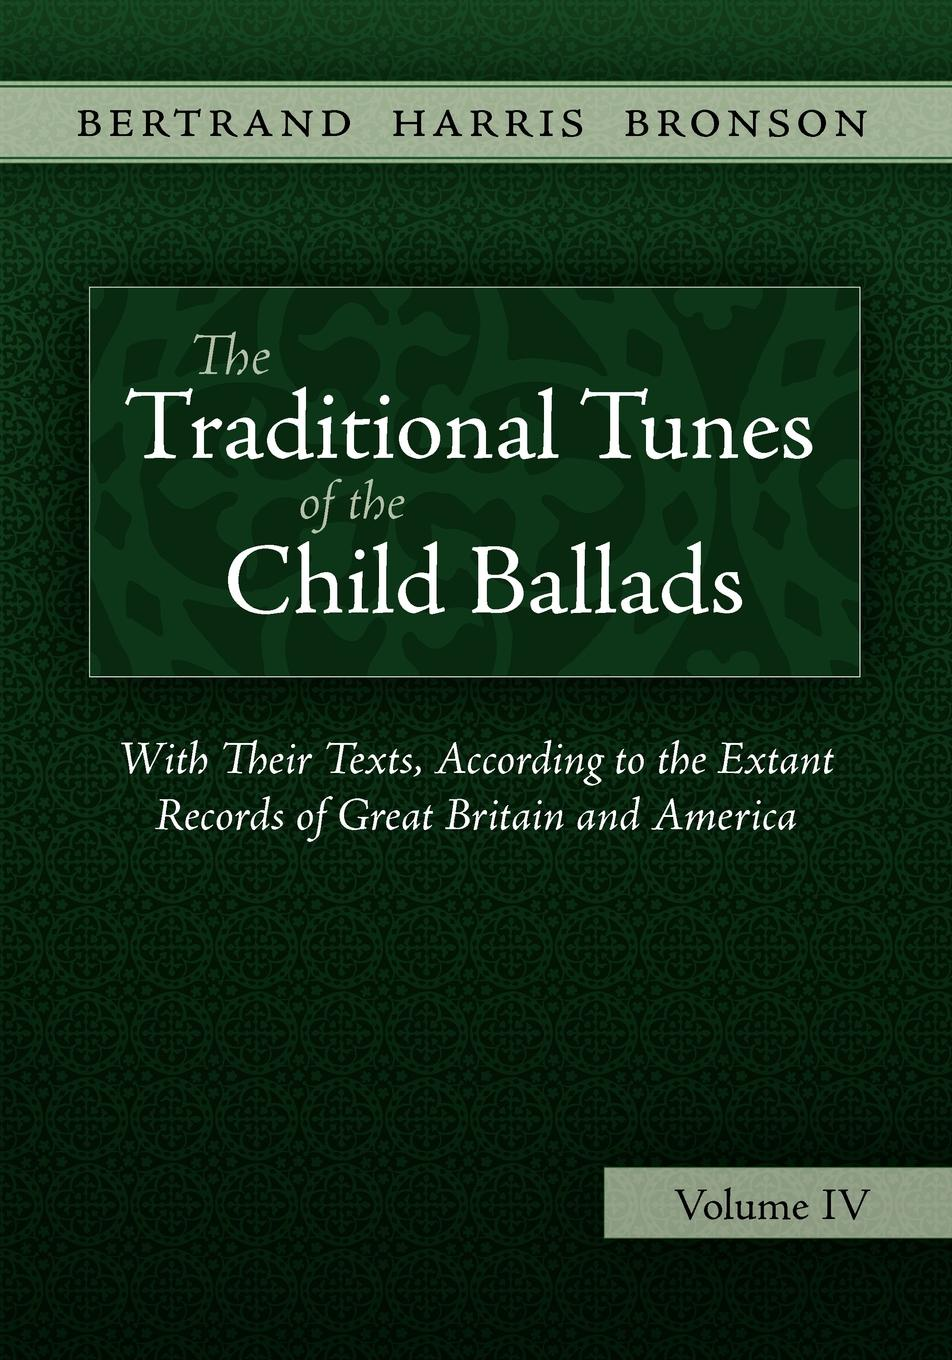 Bertrand Harris Bronson. The Traditional Tunes of the Child Ballads, Vol 4